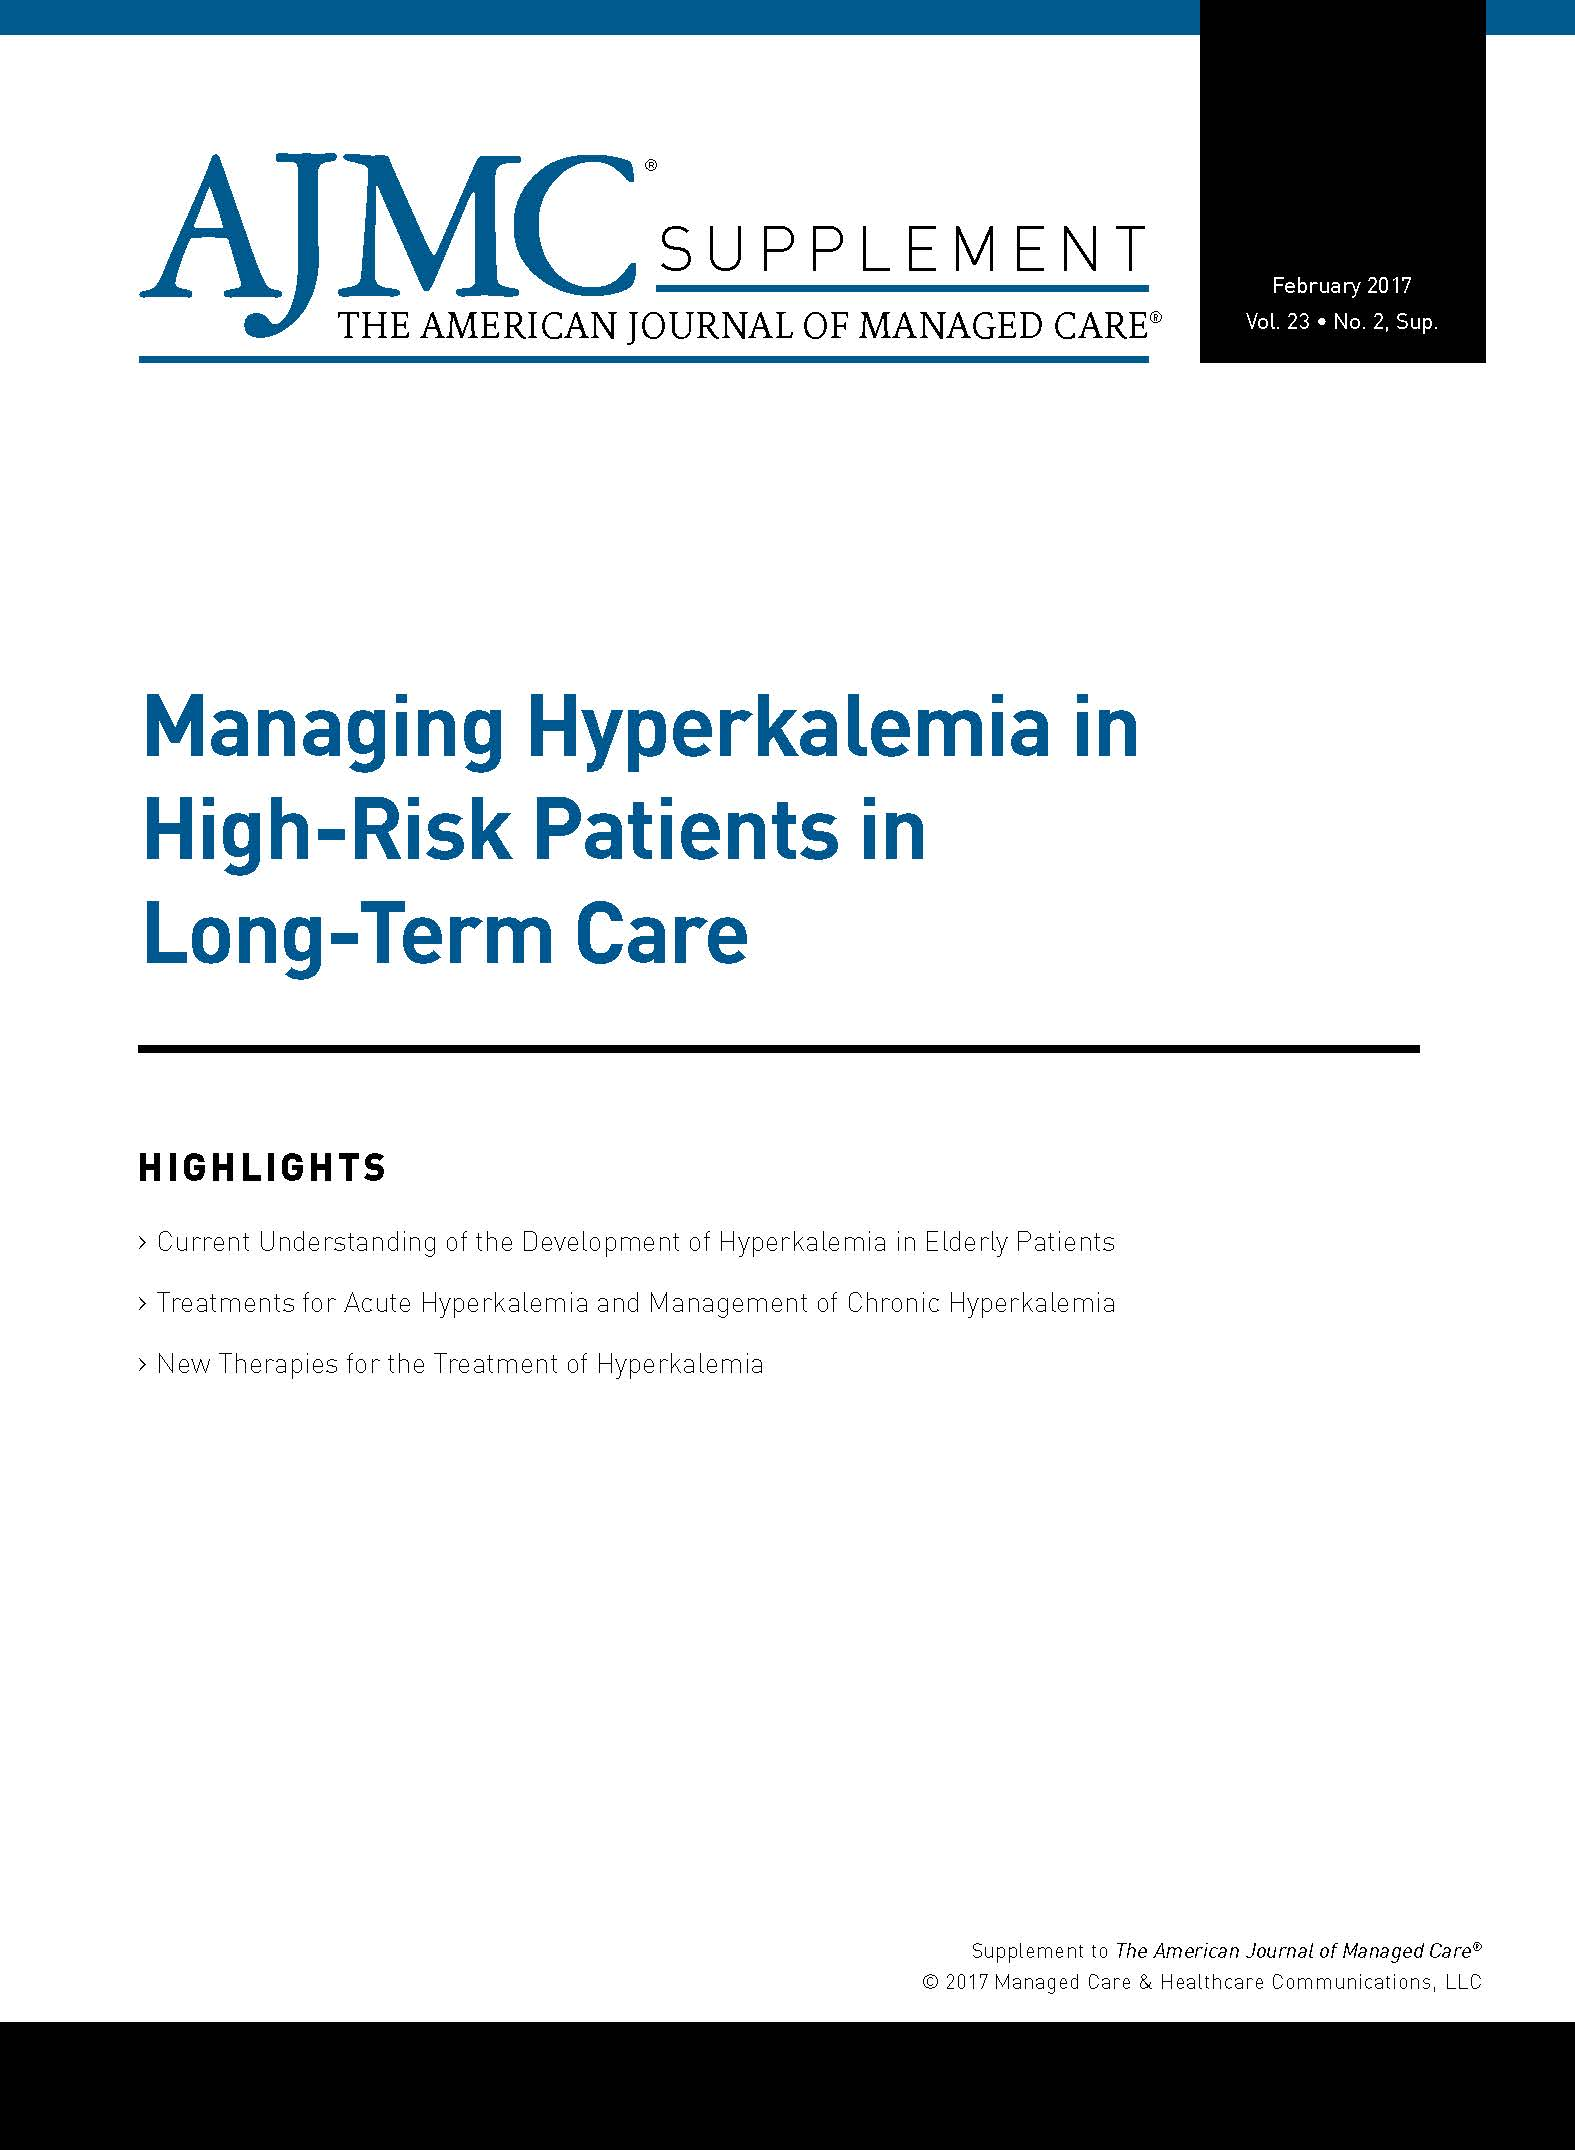 Managing Hyperkalemia in High-Risk Patients in Long-Term Care